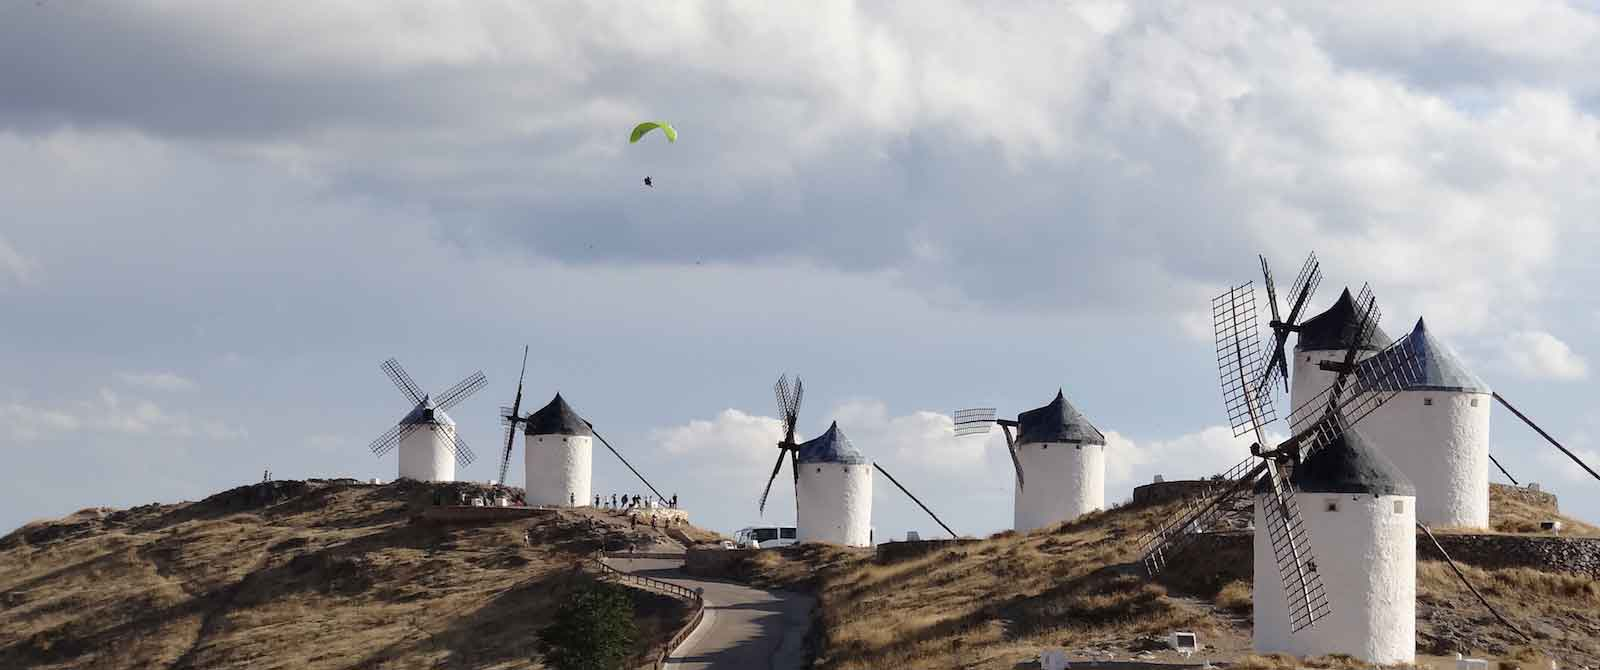 cycling holidays in spain windmills